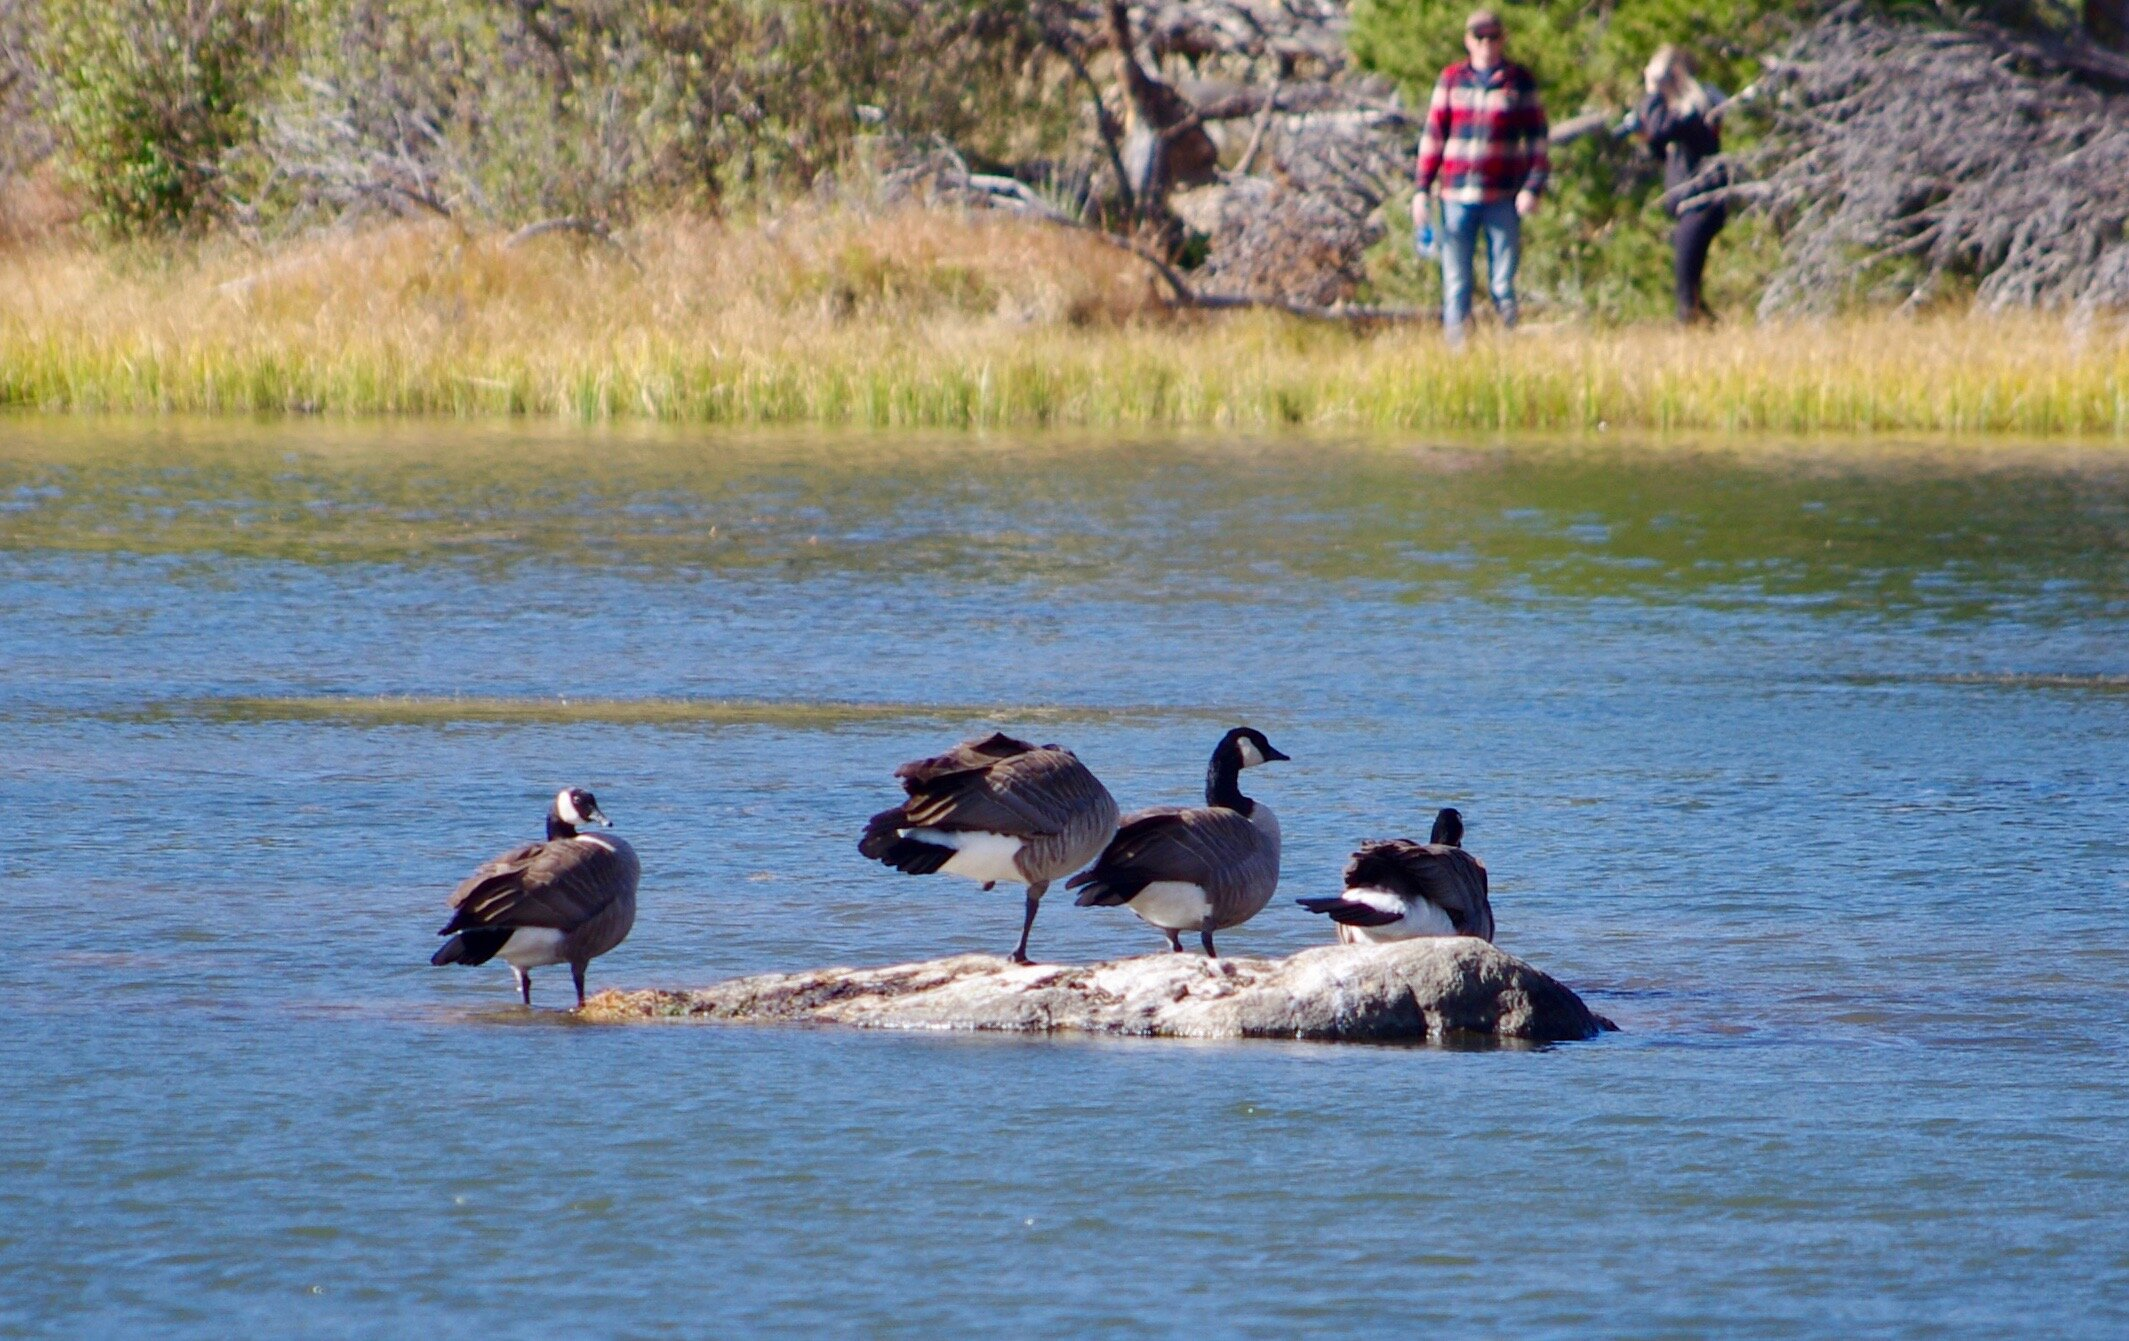 Canada geese at Sprague Lake. Plus some fuzzy tourists in the background.